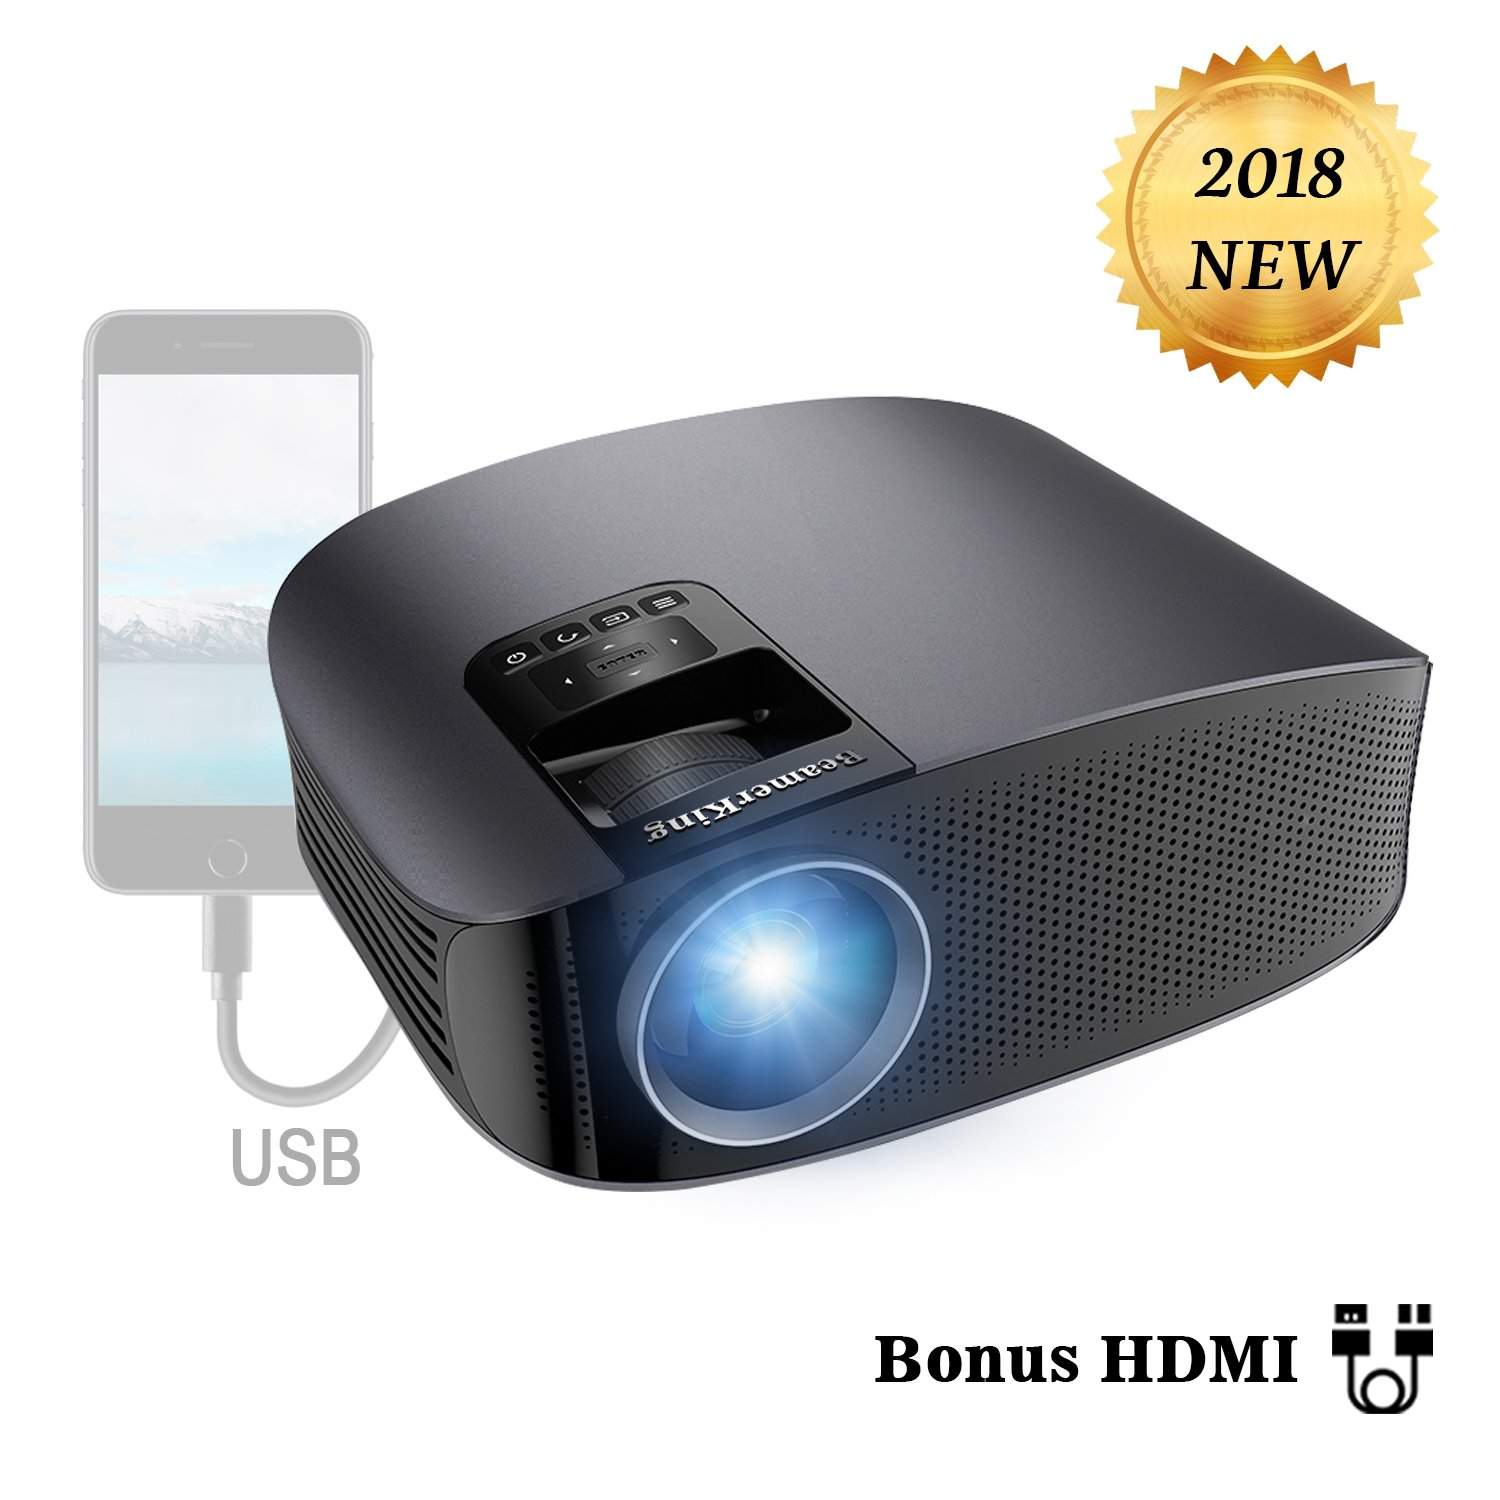 Projector Video Movie Home Theater 3500 lumens 1280x800 Native Resolution Support 1080P LED Projector for iPhone Laptop Andriod Smartphone PS4 Xbox TV Box Fire TV WS610 by BeamerKing by BeamerKing (Image #1)